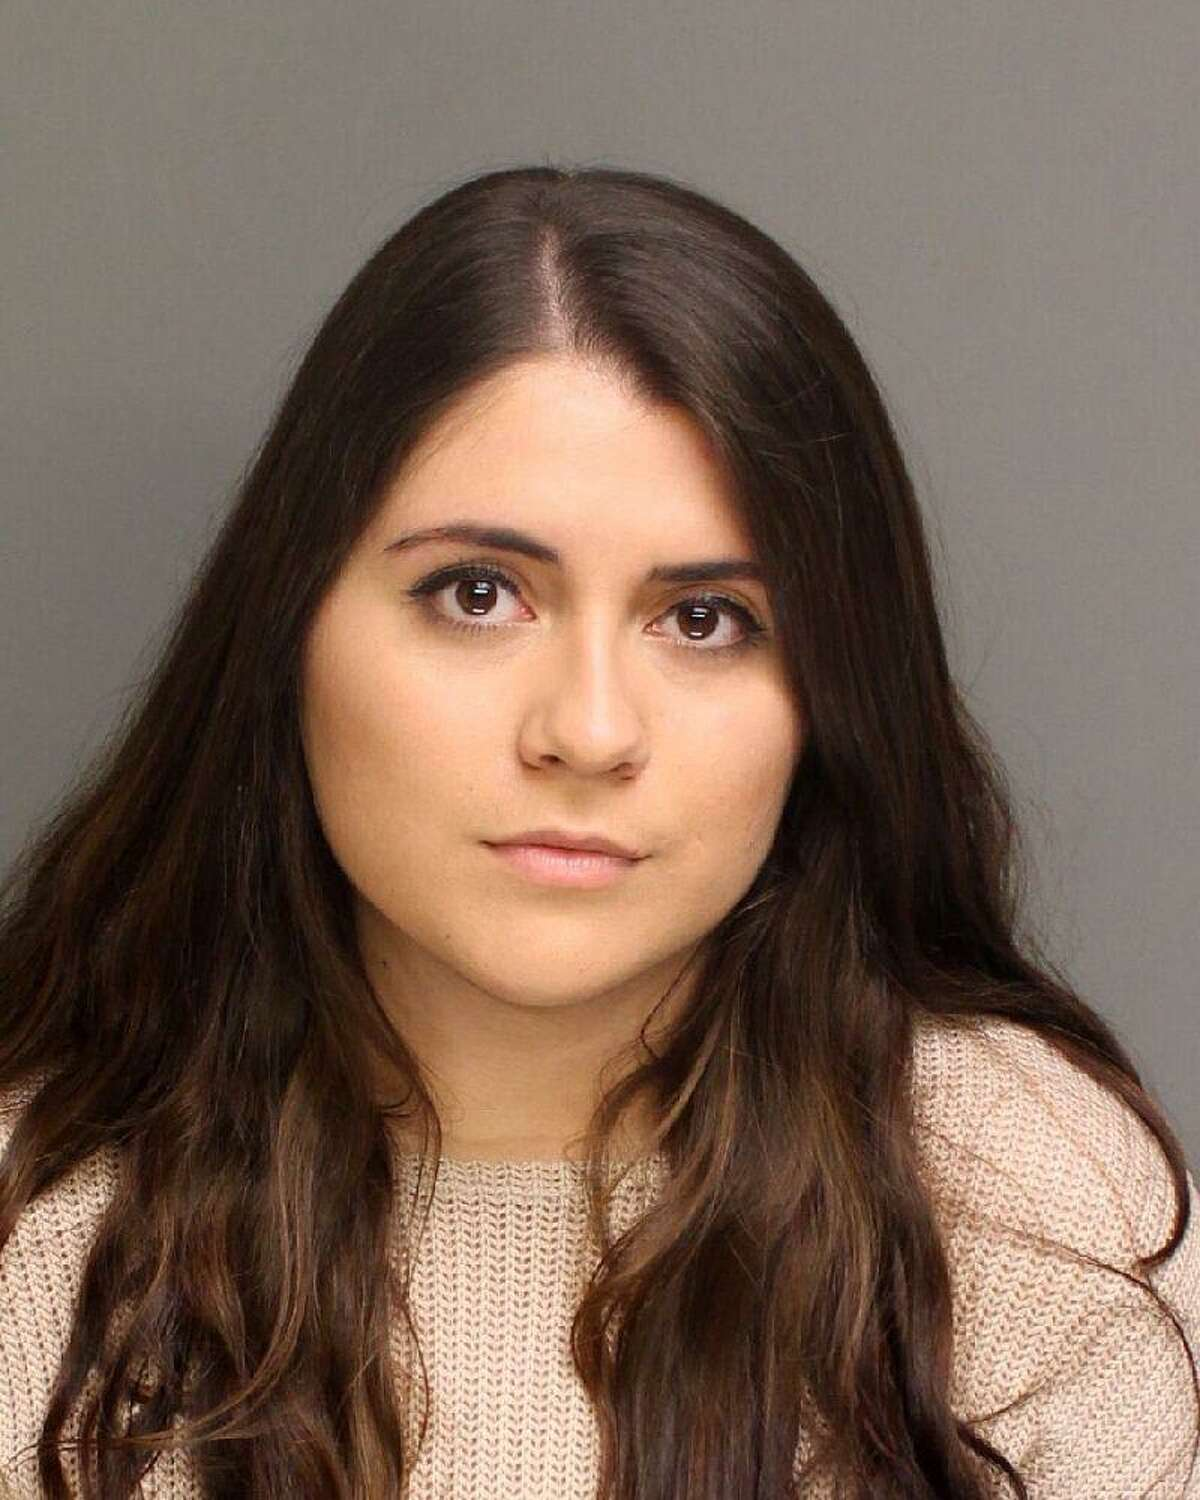 Nikki Yovino, of South Setauket, N.Y., was convicted of falsely claiming she was sexually assaulted by two Sacred Hearst University students.